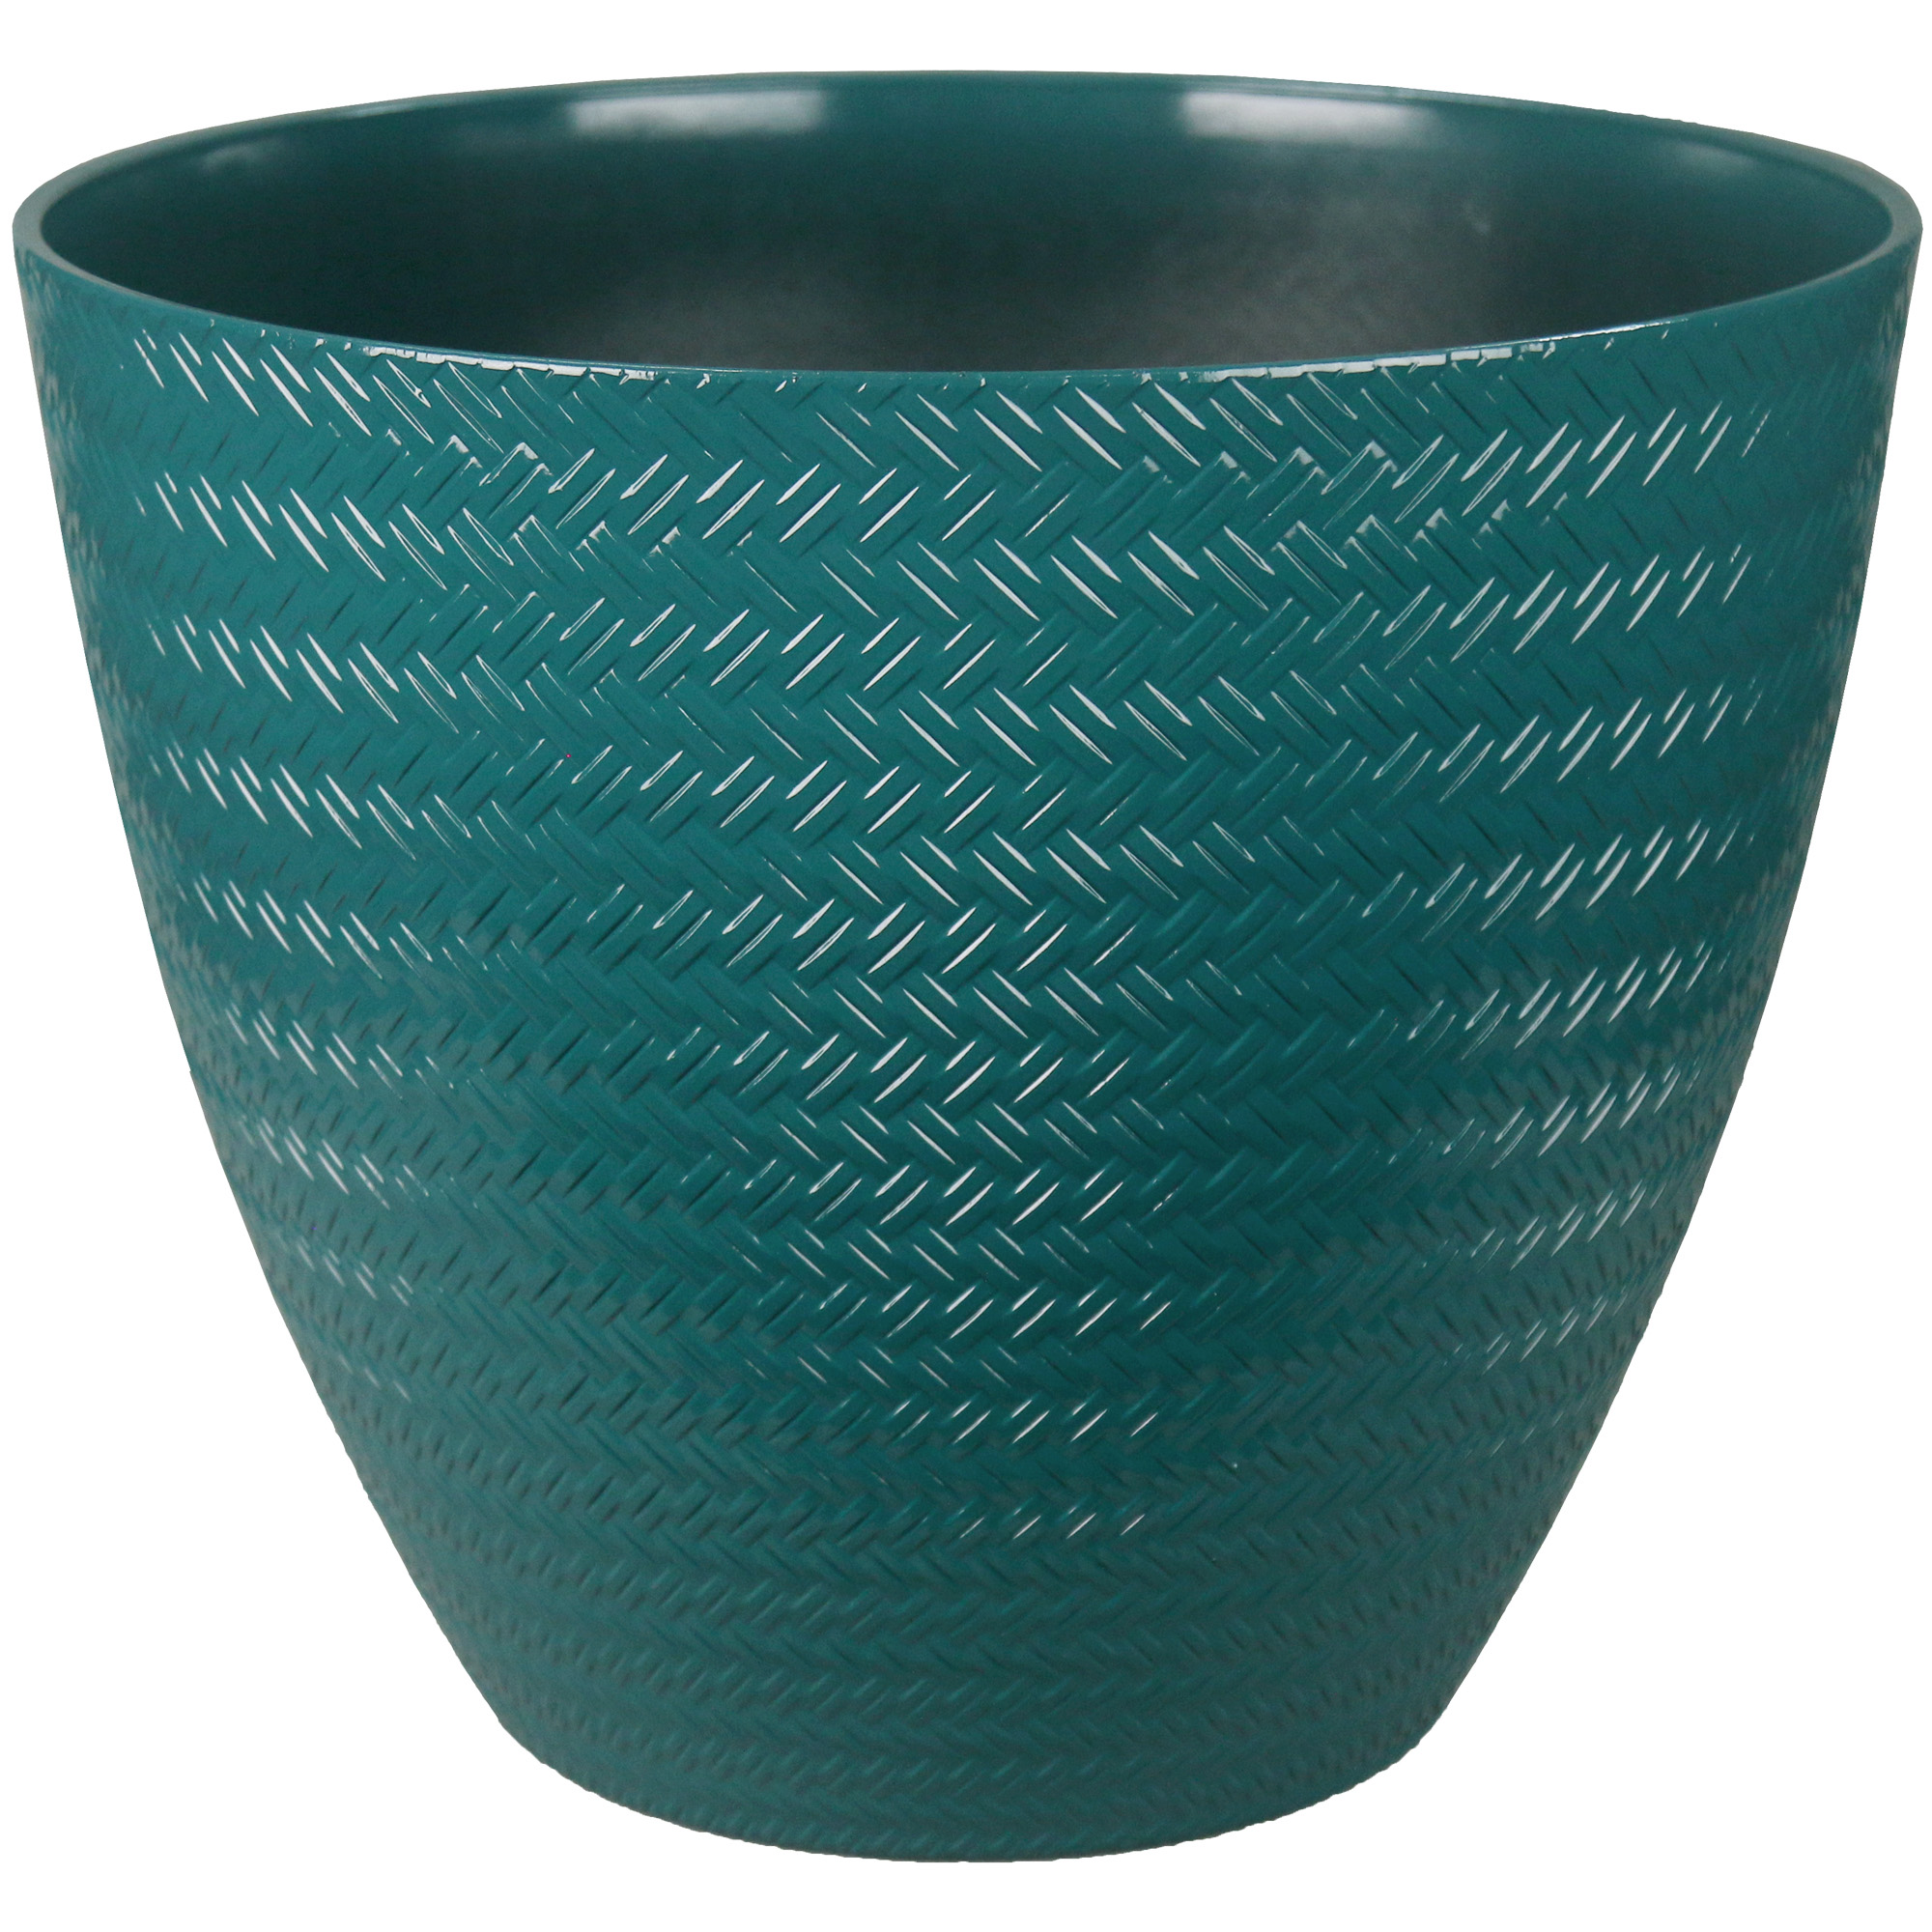 16IN WEAVE PLANTER TEAL